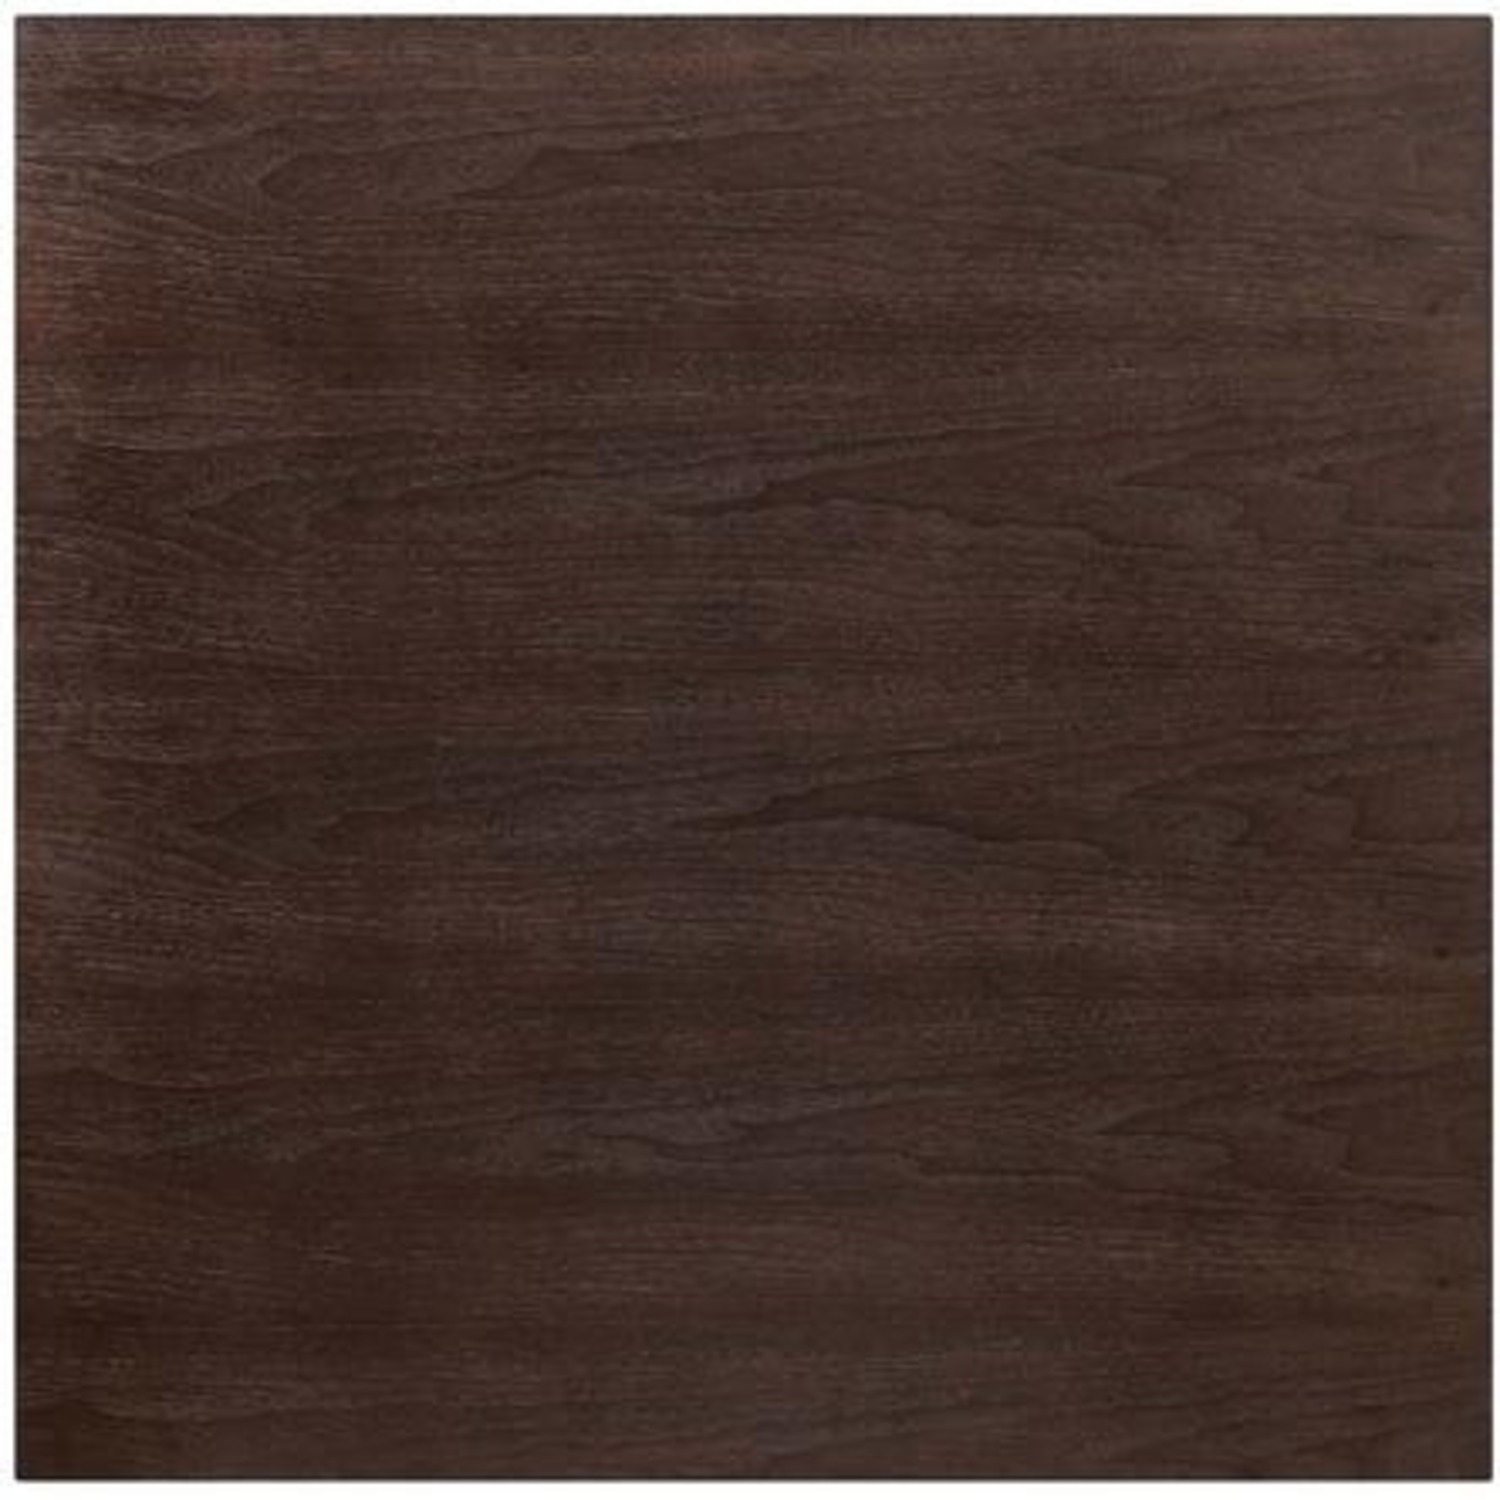 Modern Dining Table In Square Cherry Walnut Top - image-2